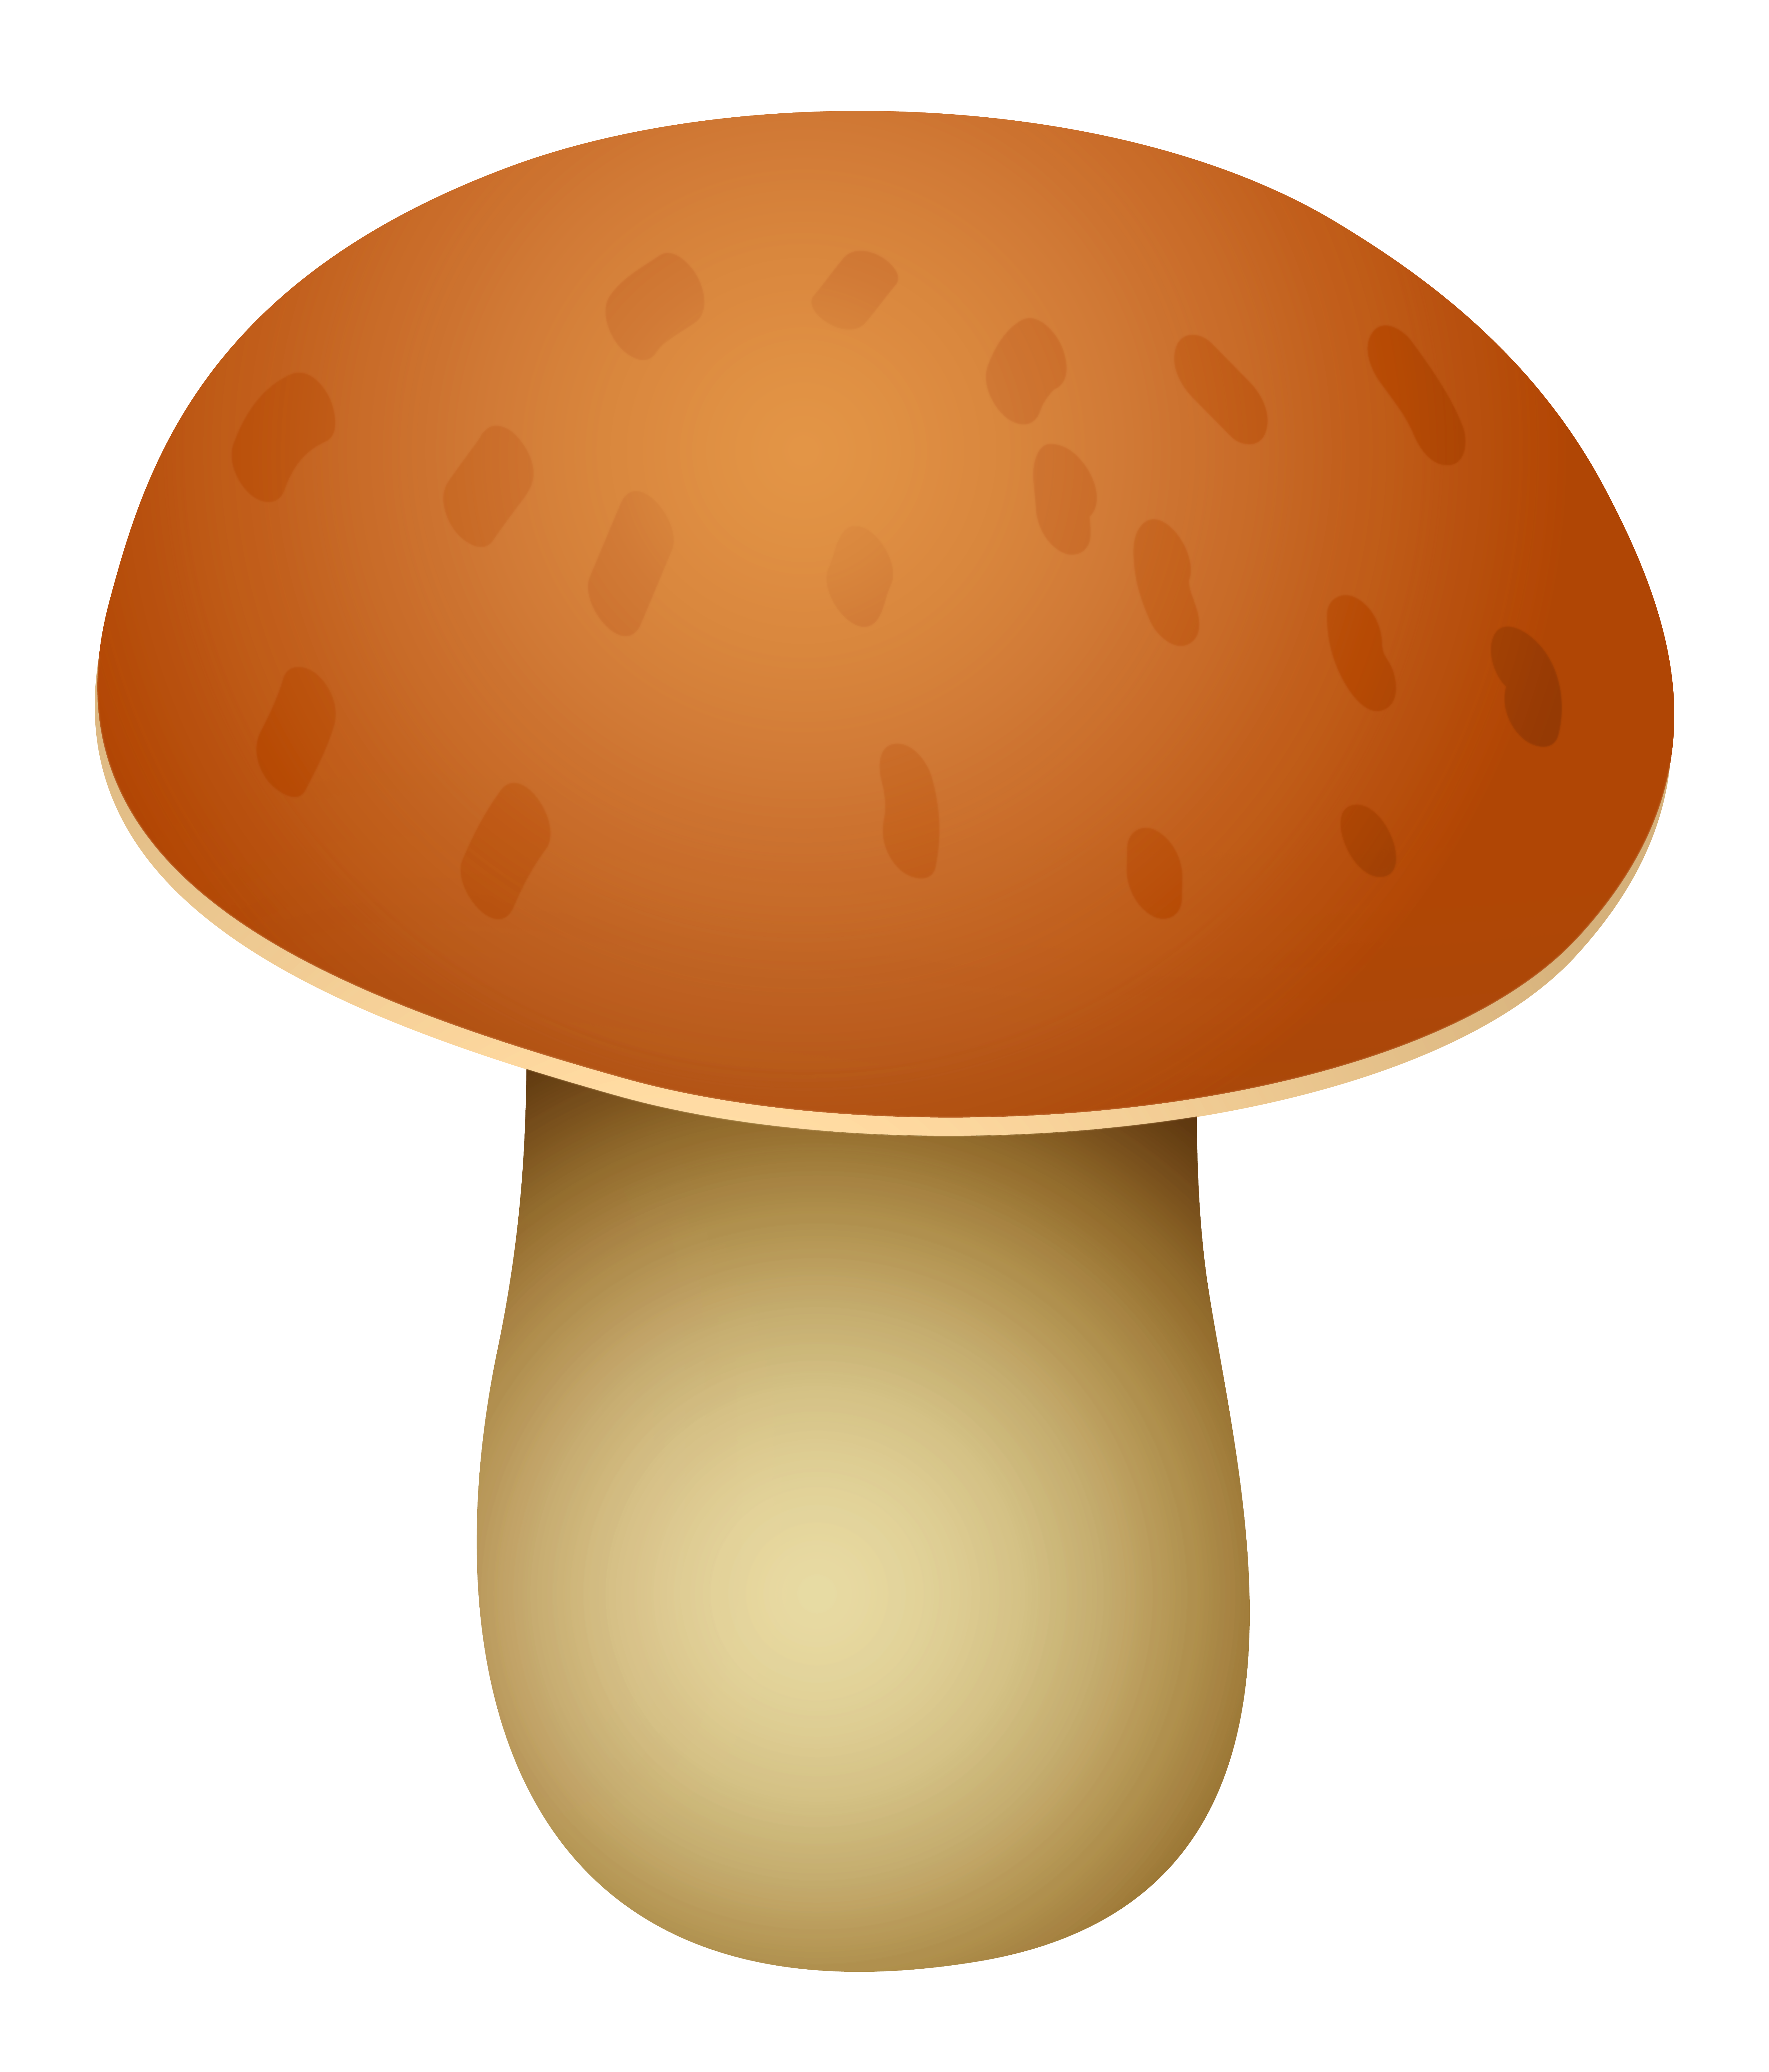 Brown Spotted Mushroom PNG Clipart.